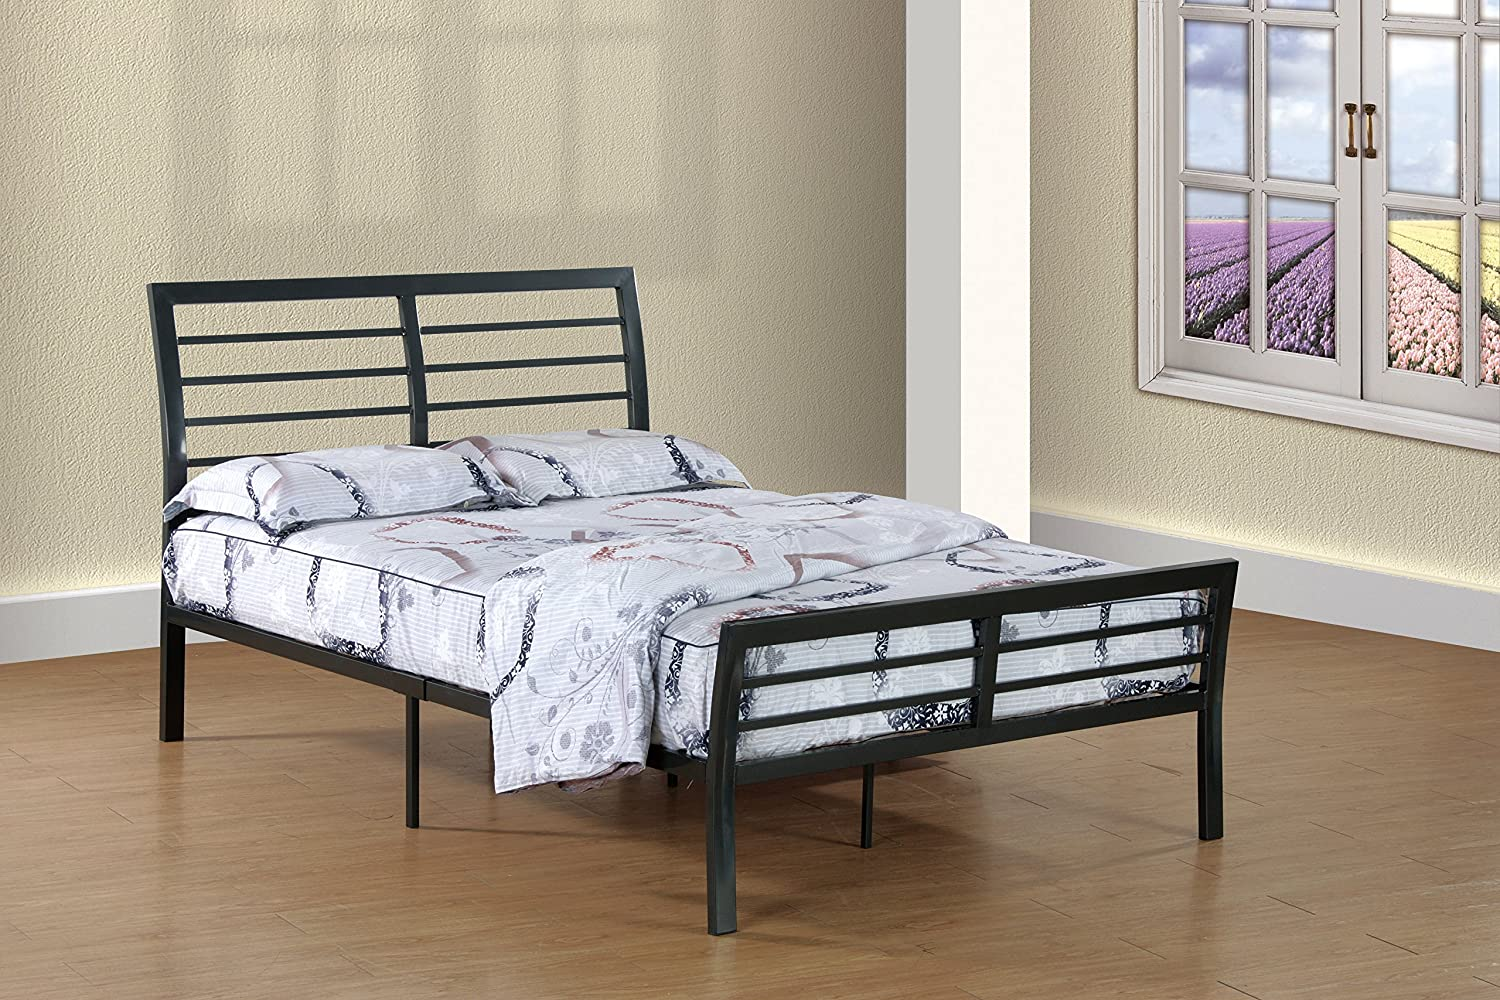 - Amazon.com: Furniture World Wright Contemporary Metal Sleigh Bed